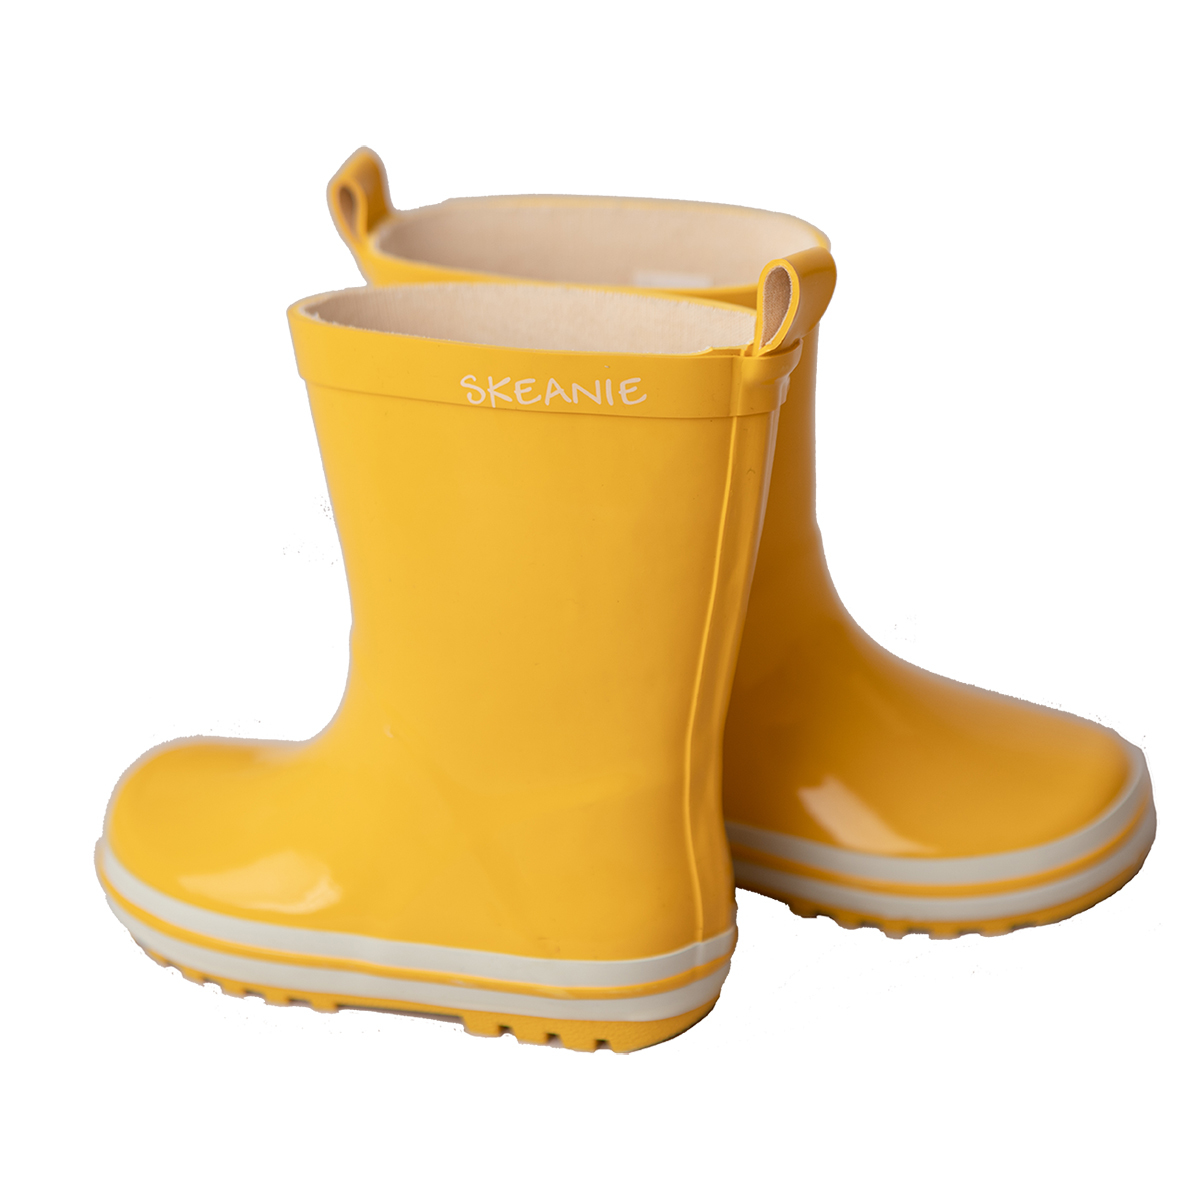 Skeanie: Kids Gumboots Yellow - Size 26 image